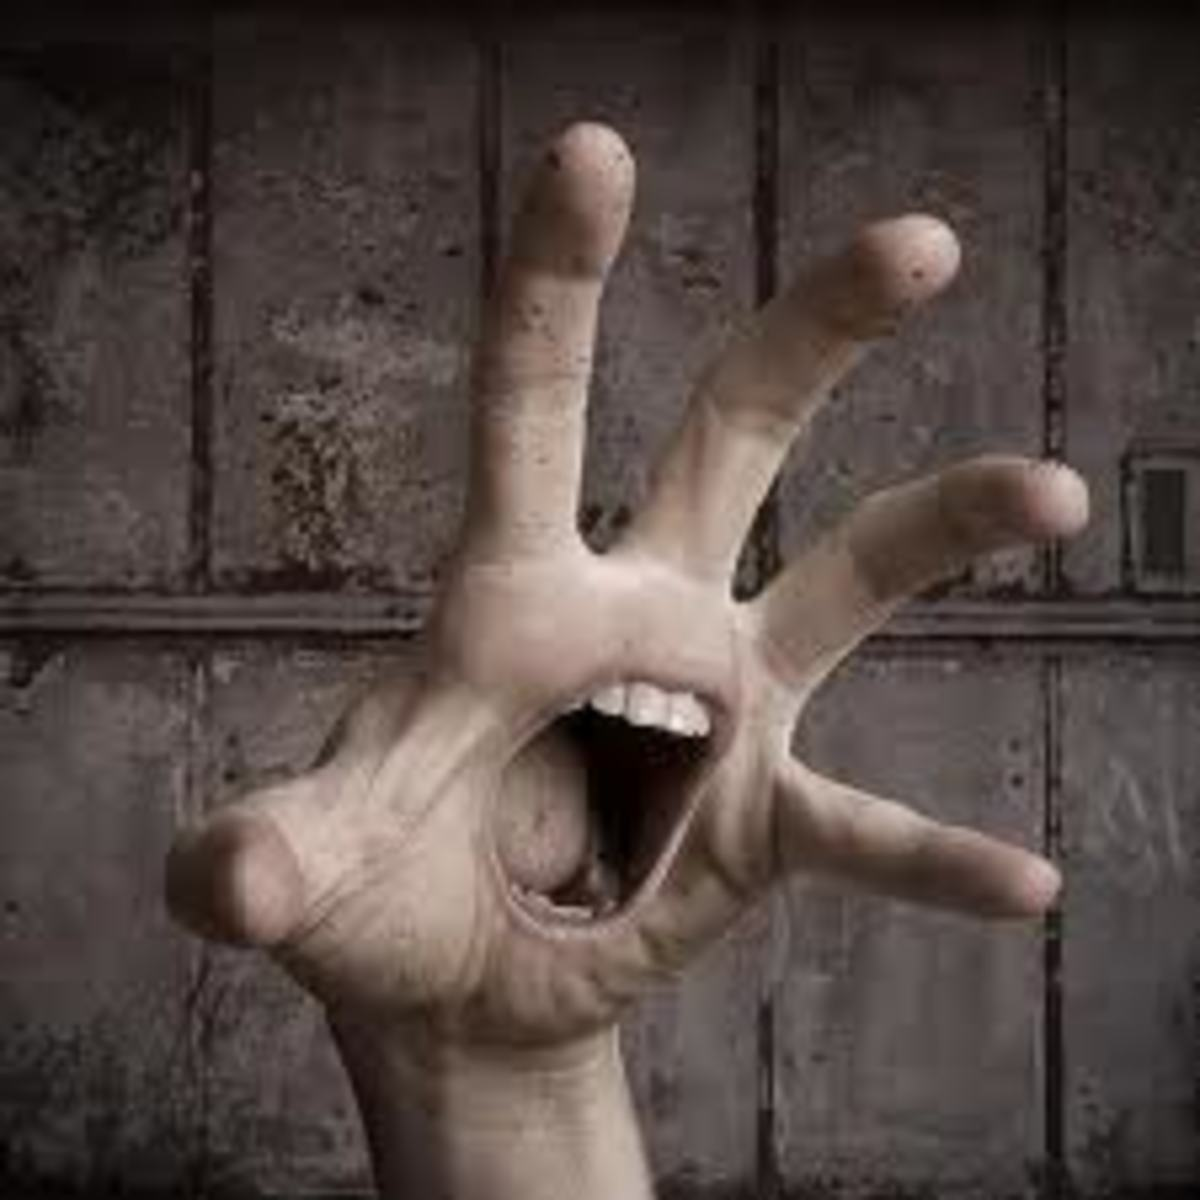 What you do with your hands speaks volumes as to the make up of your character. So what do you do with your hands?